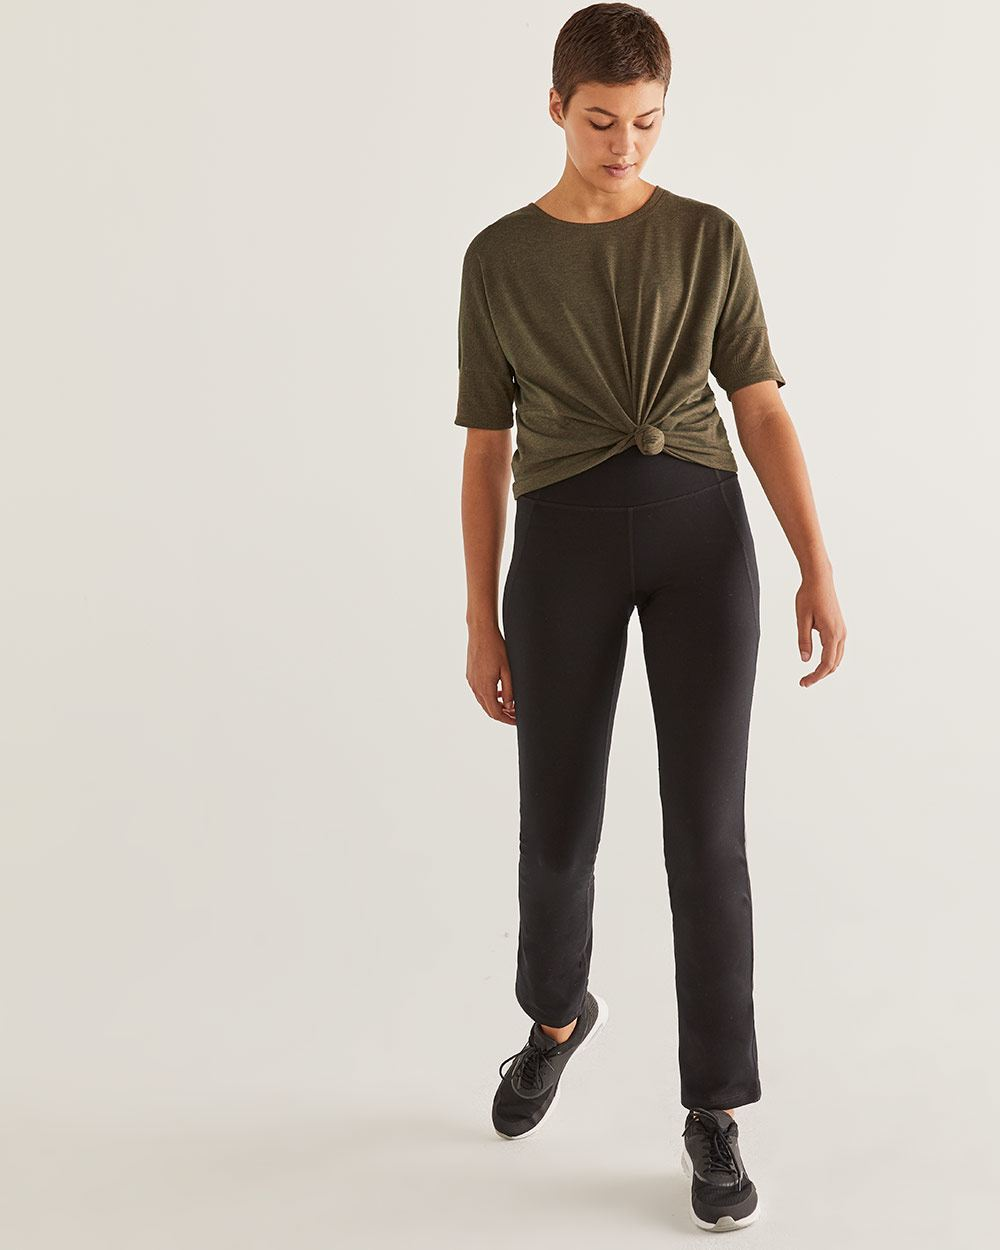 Black Straight Sculptor Pants Hyba - Petite